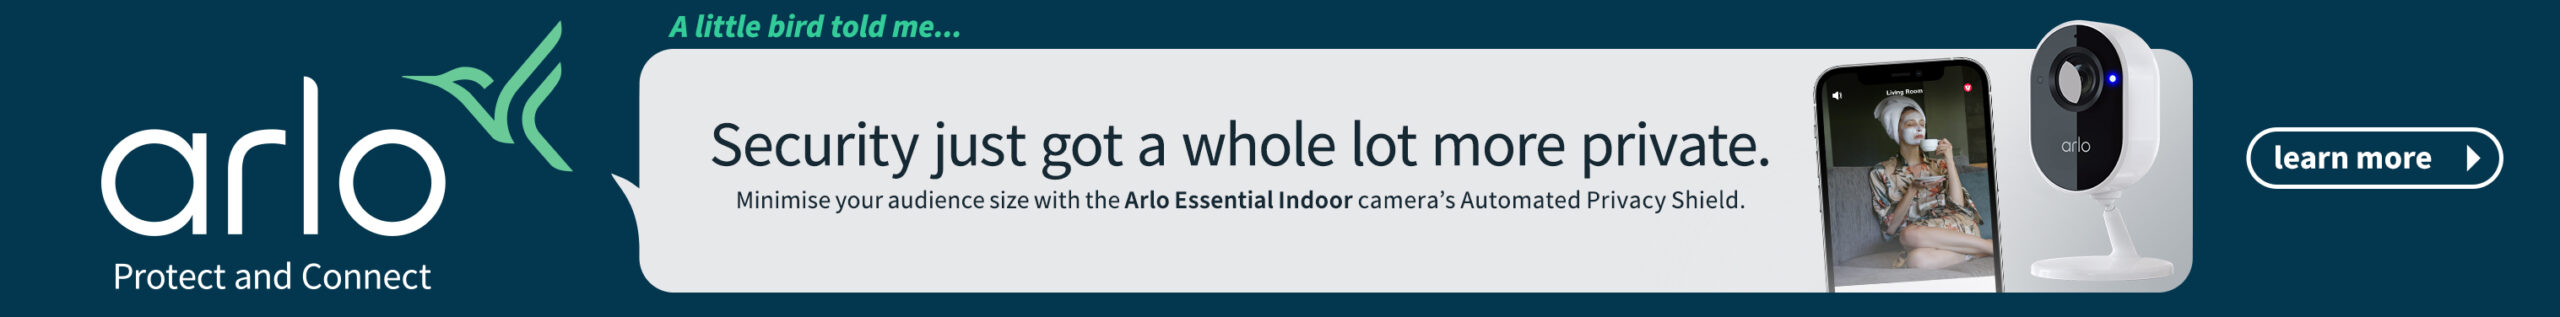 ARL0355 Arlo ESS Indoor Generic Banner 728x90 V4 scaled Robbers Ram Beemer Into Apple Store, CCTV Video